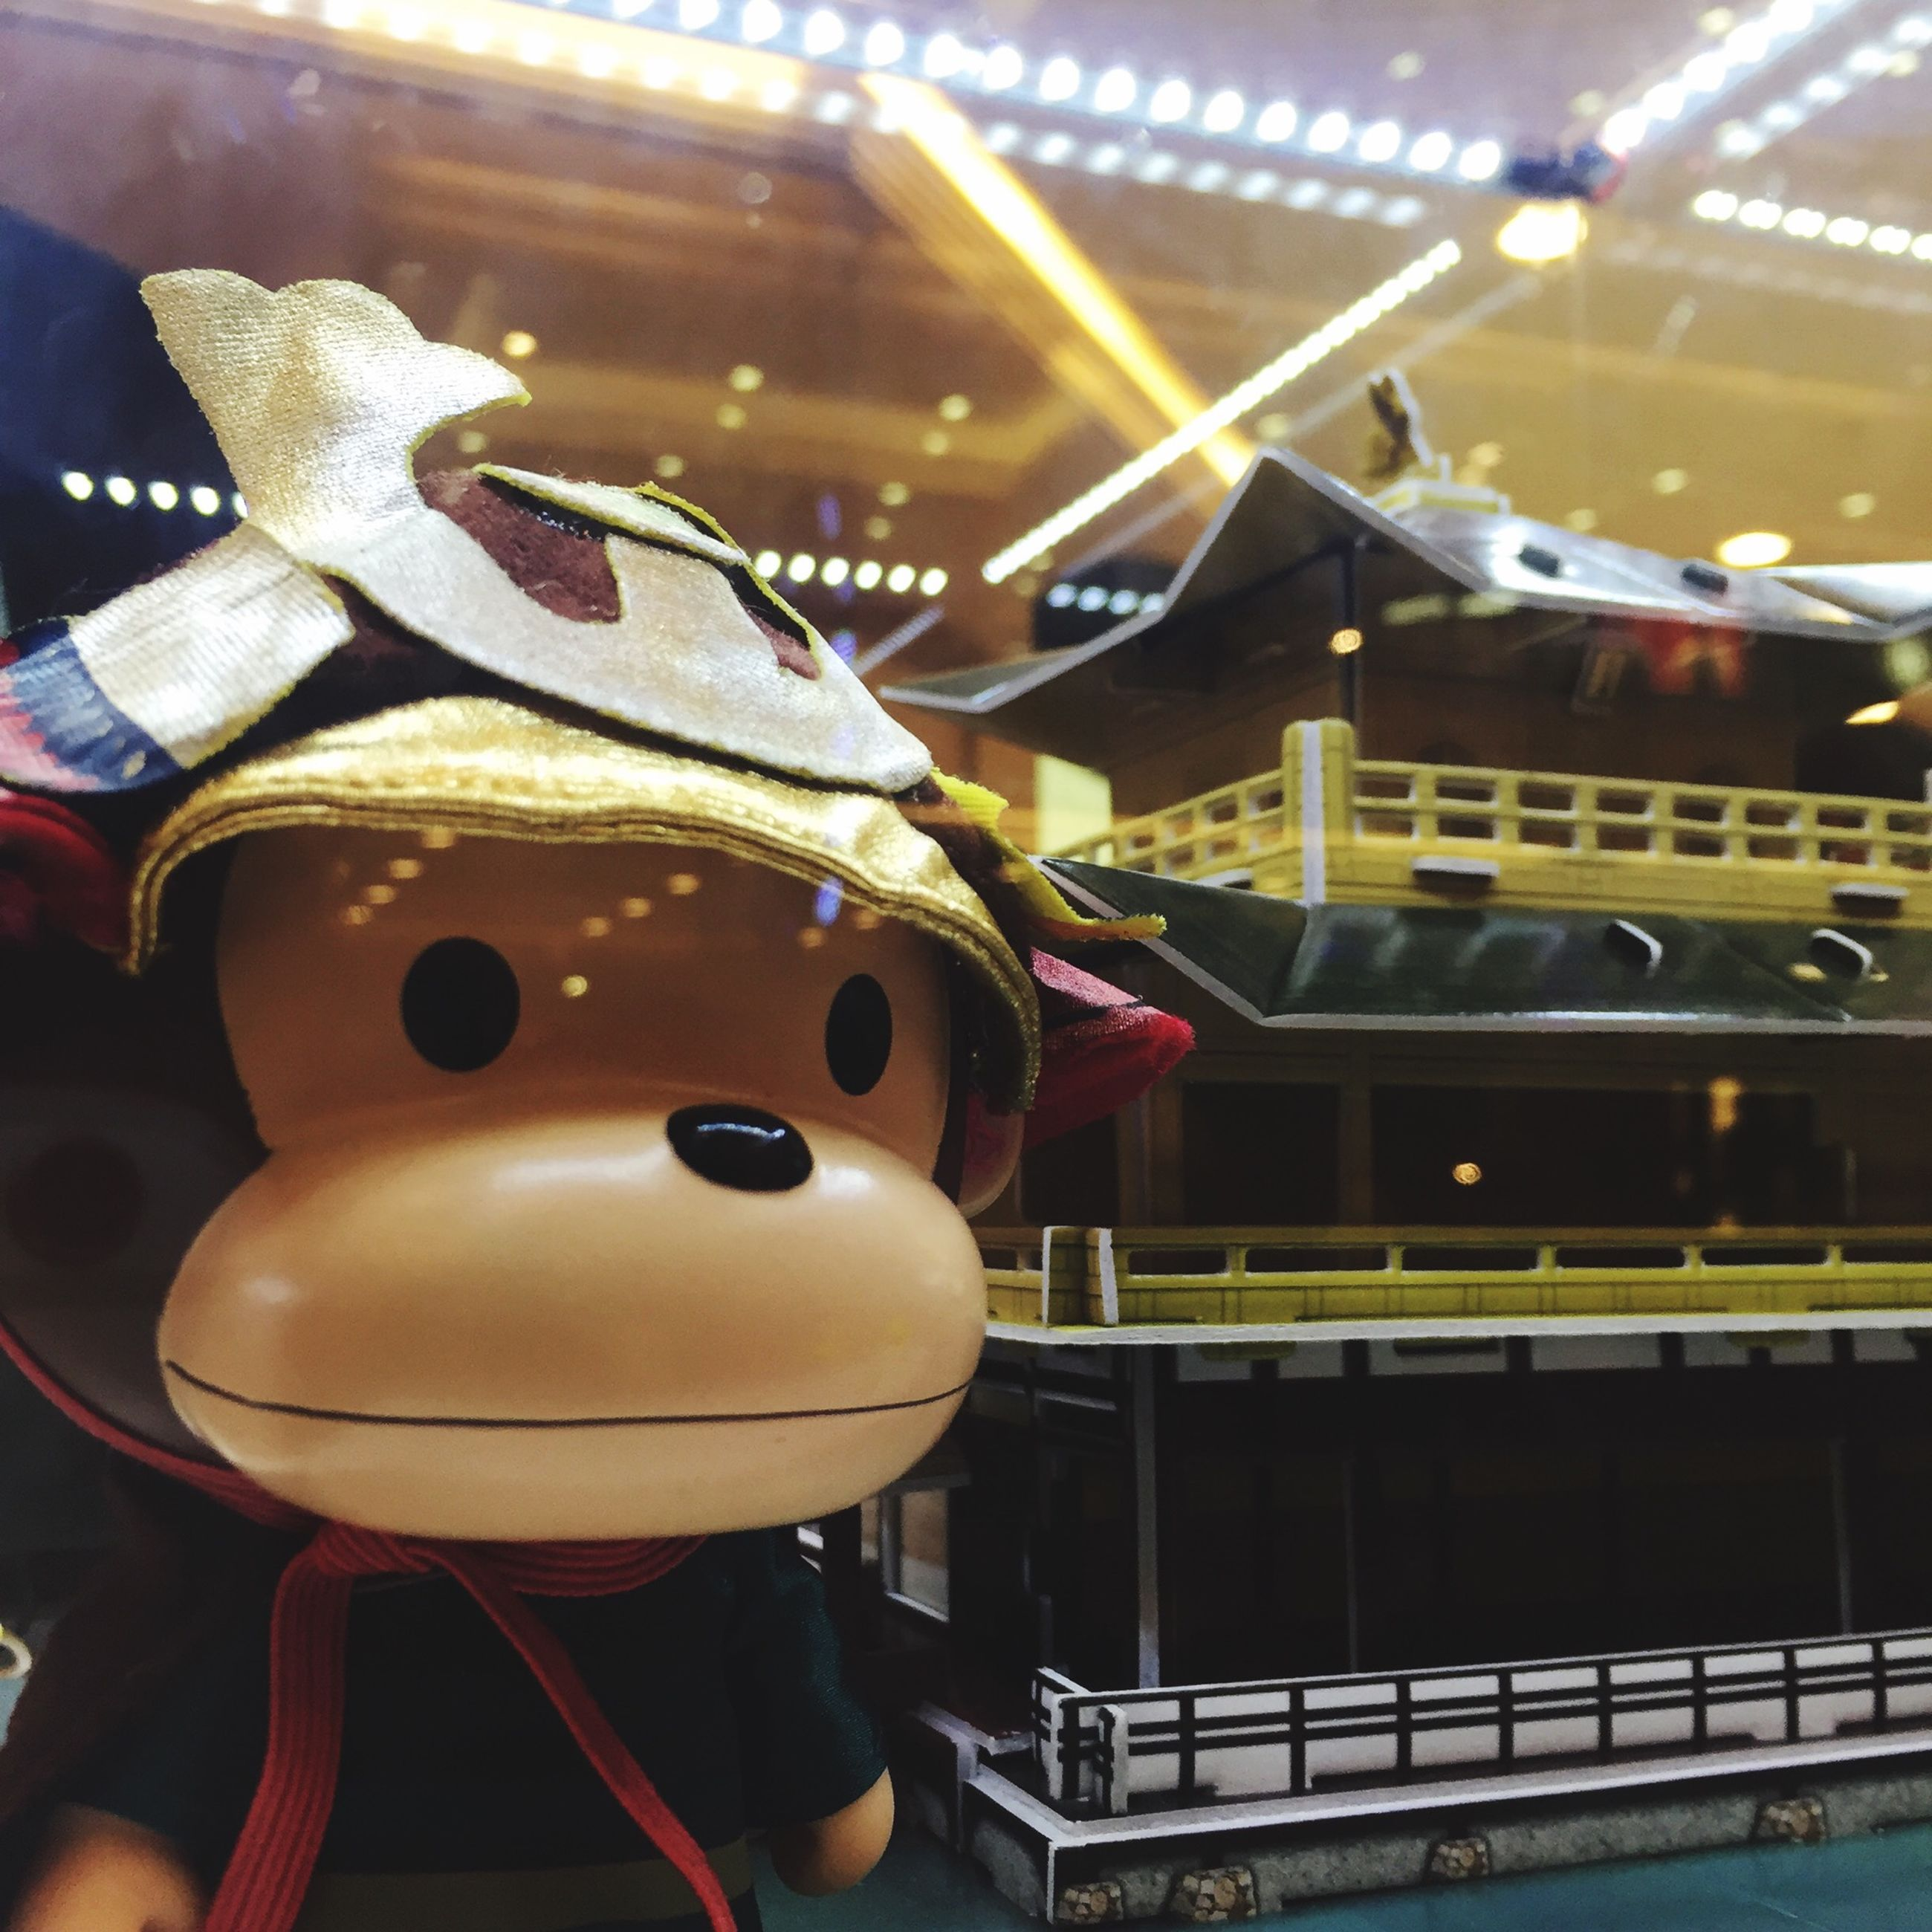 indoors, close-up, toy, focus on foreground, no people, arts culture and entertainment, metal, incidental people, still life, childhood, holding, occupation, day, high angle view, technology, part of, illuminated, musical instrument, equipment